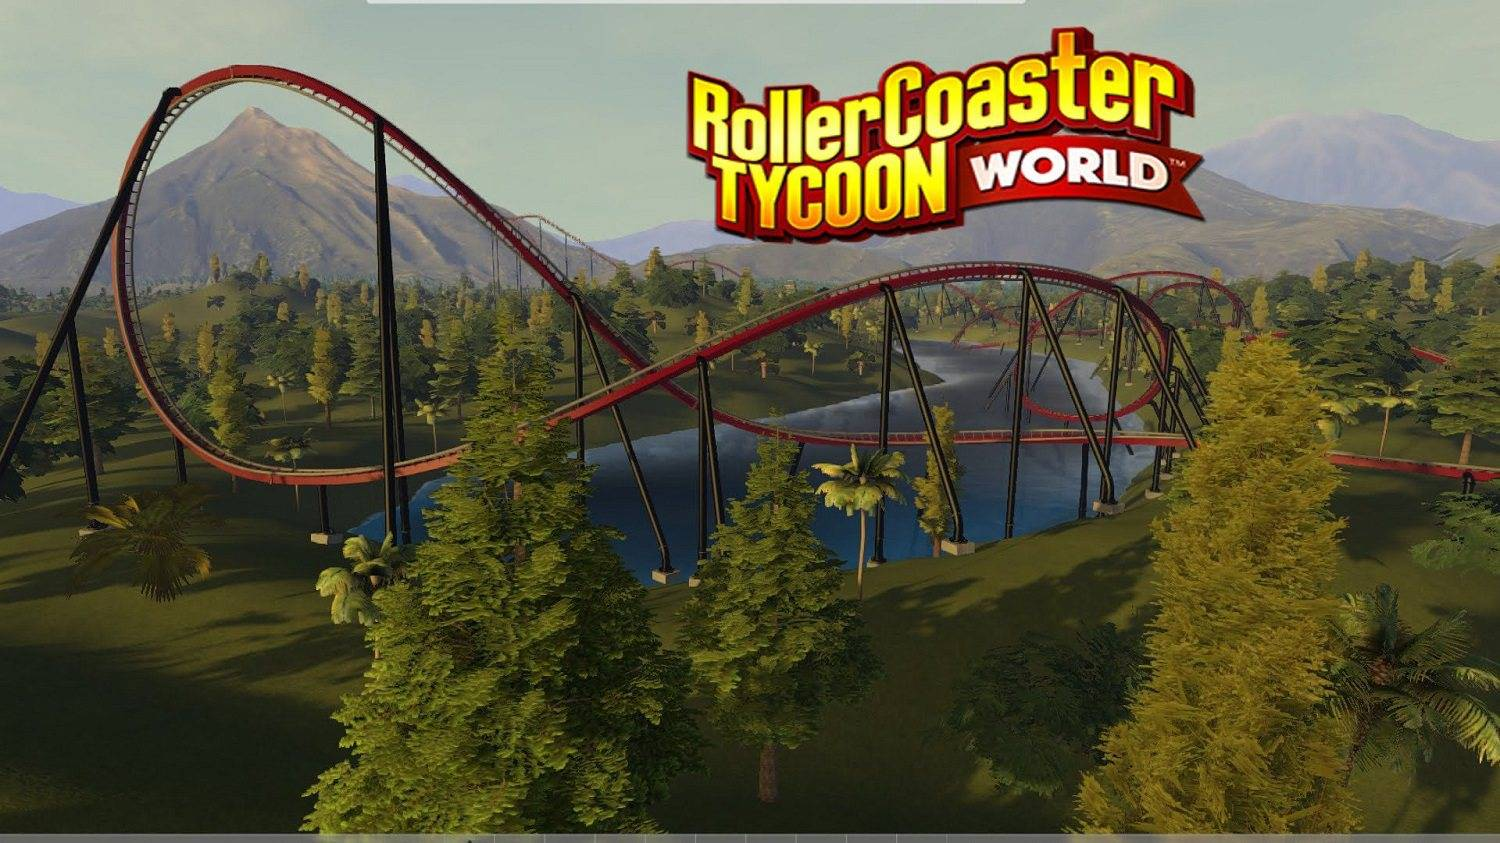 Roller coaster tycoon 3 sex nackt breasts